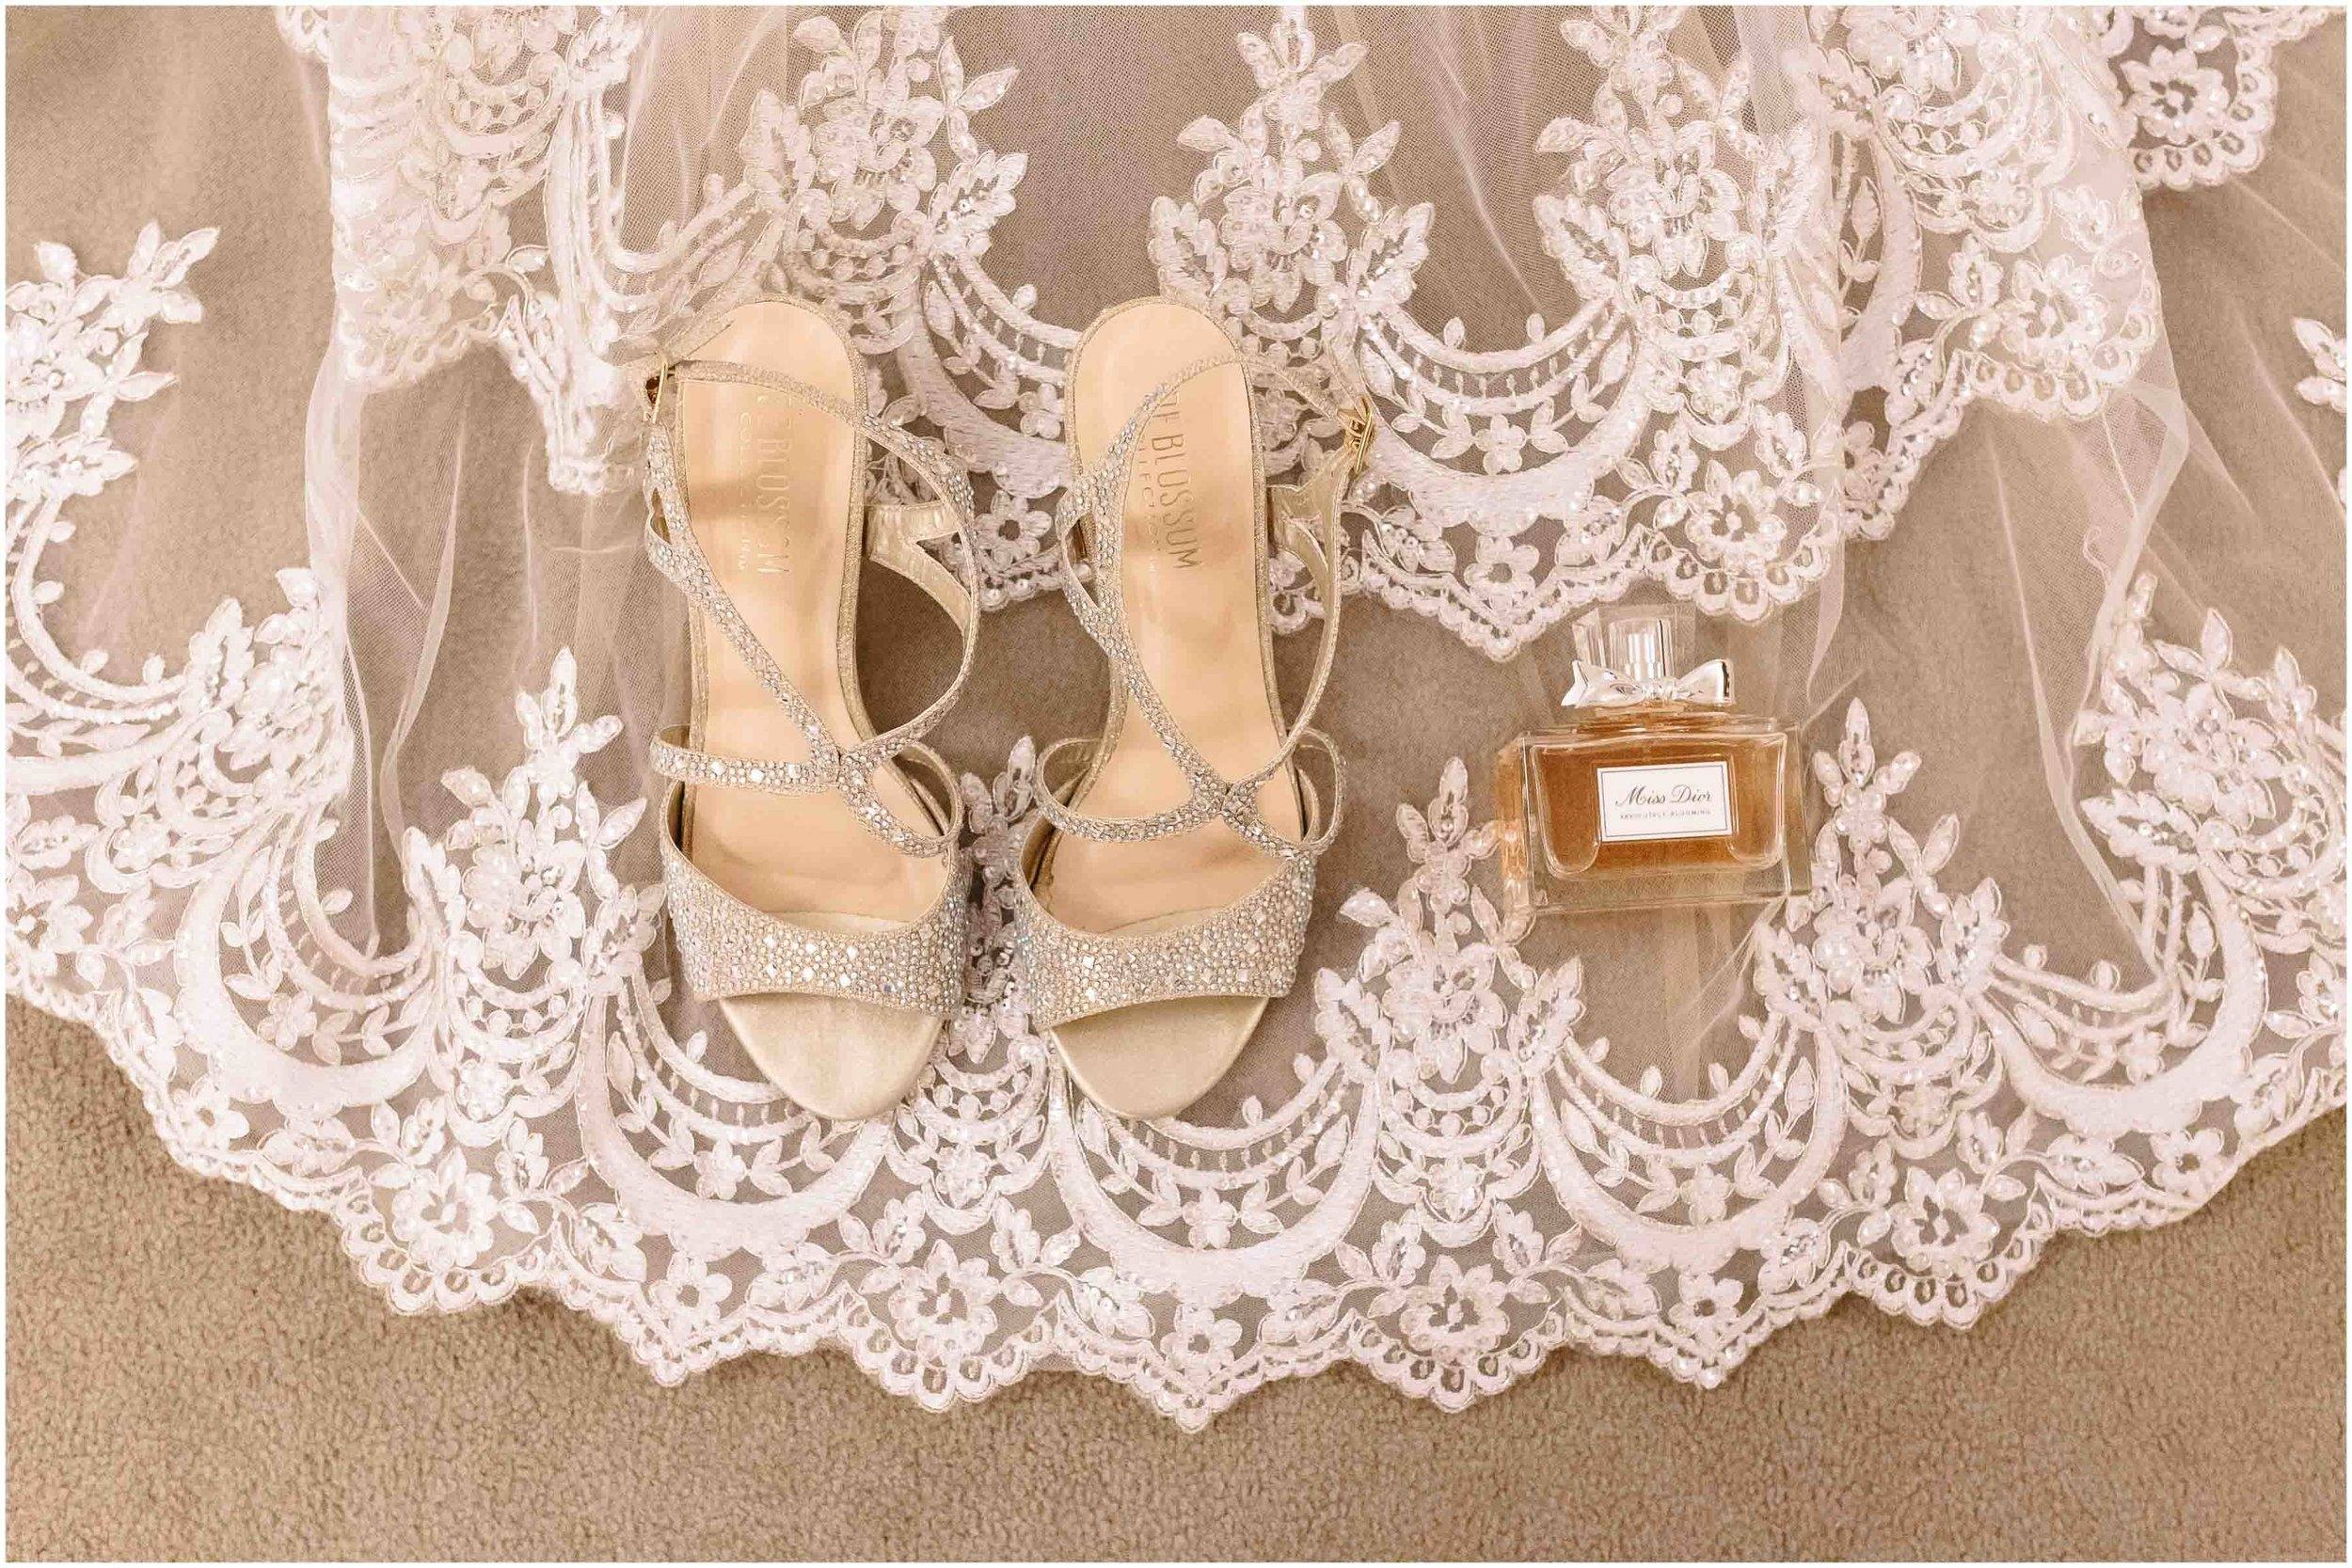 Scenic New Hampshire Wedding at Atkinson Resort and Country Club - Bridal shoes, lace details, and perfume